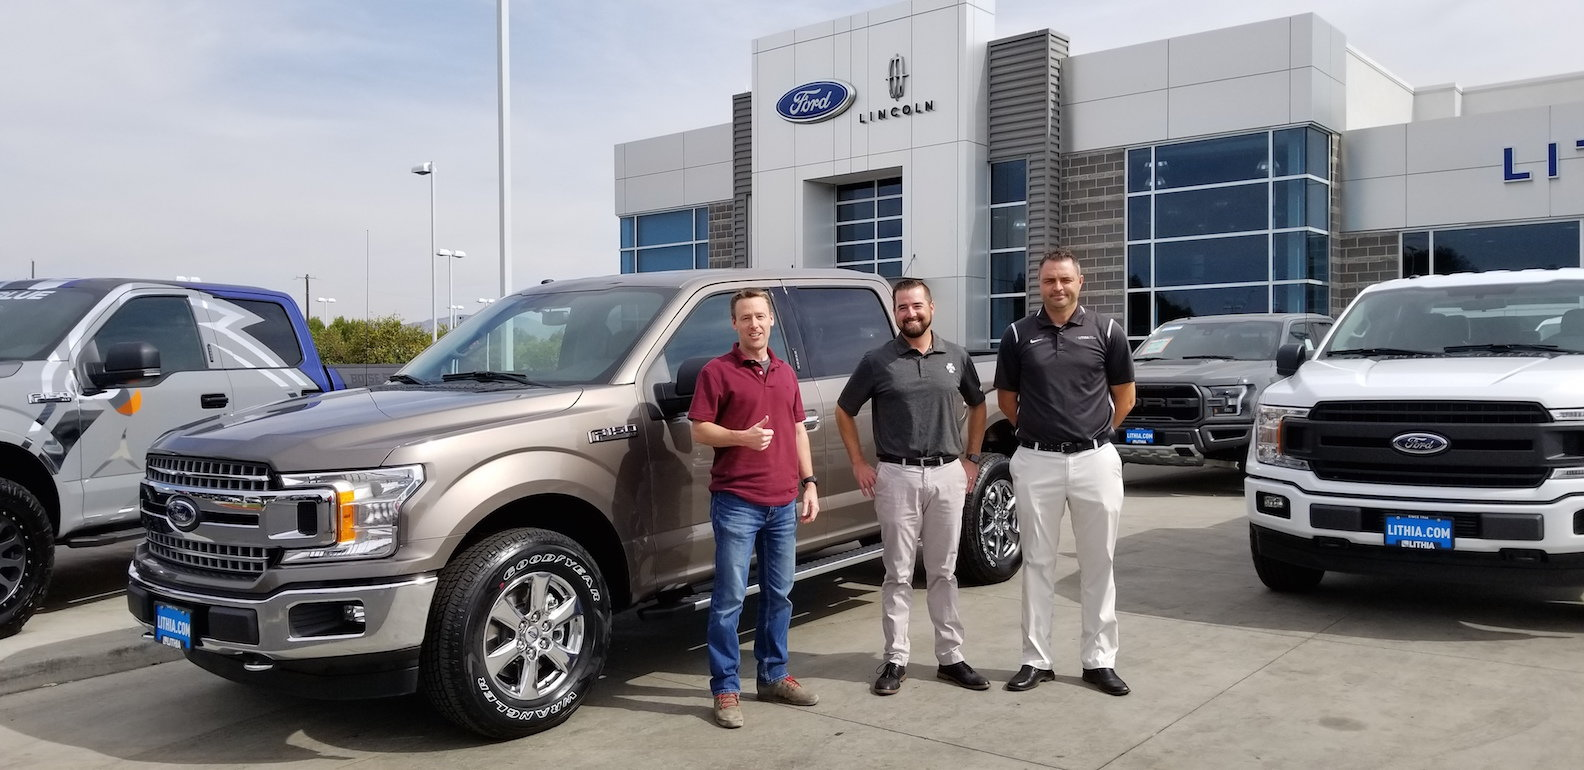 Lithia Ford Boise >> 2018 Acquired Lithia Ford Boise Excellence Again Ford